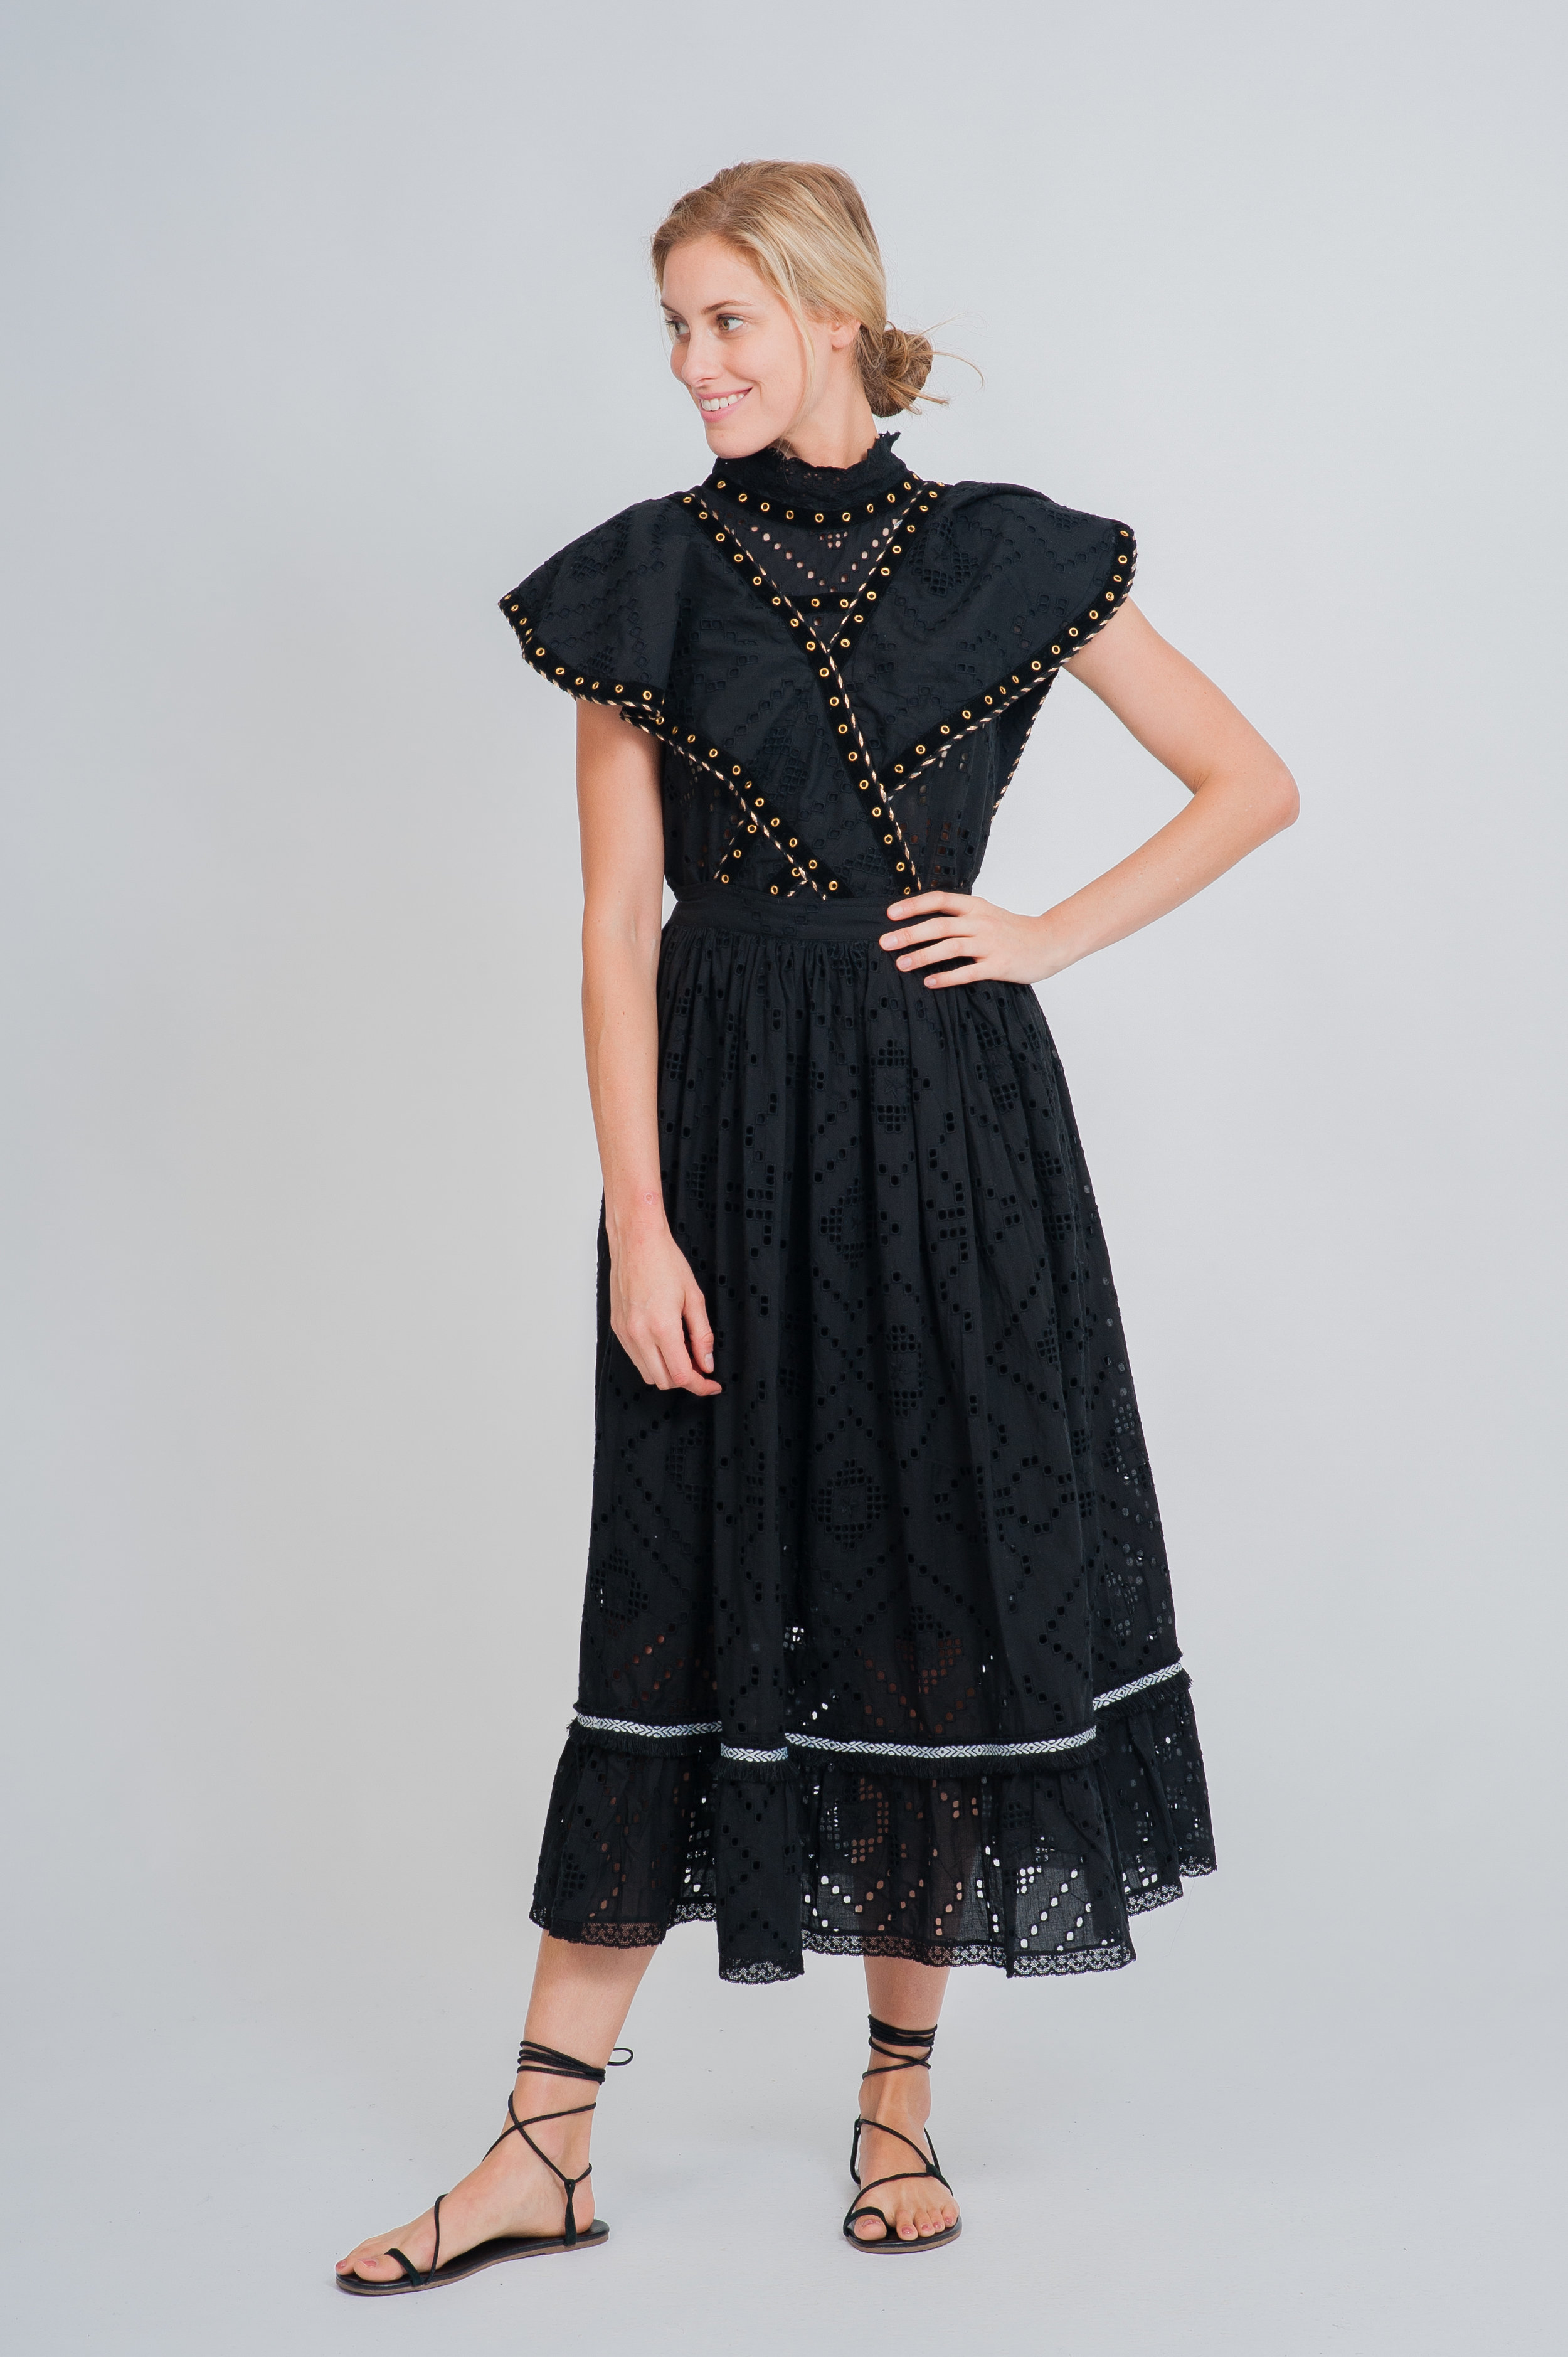 SS19-43 GRAND-TERRE CUTWORK LACE PINAFORE DRESS worn with  SS19-09 LE PILOU CUTWORK LACE SMOCK TOP